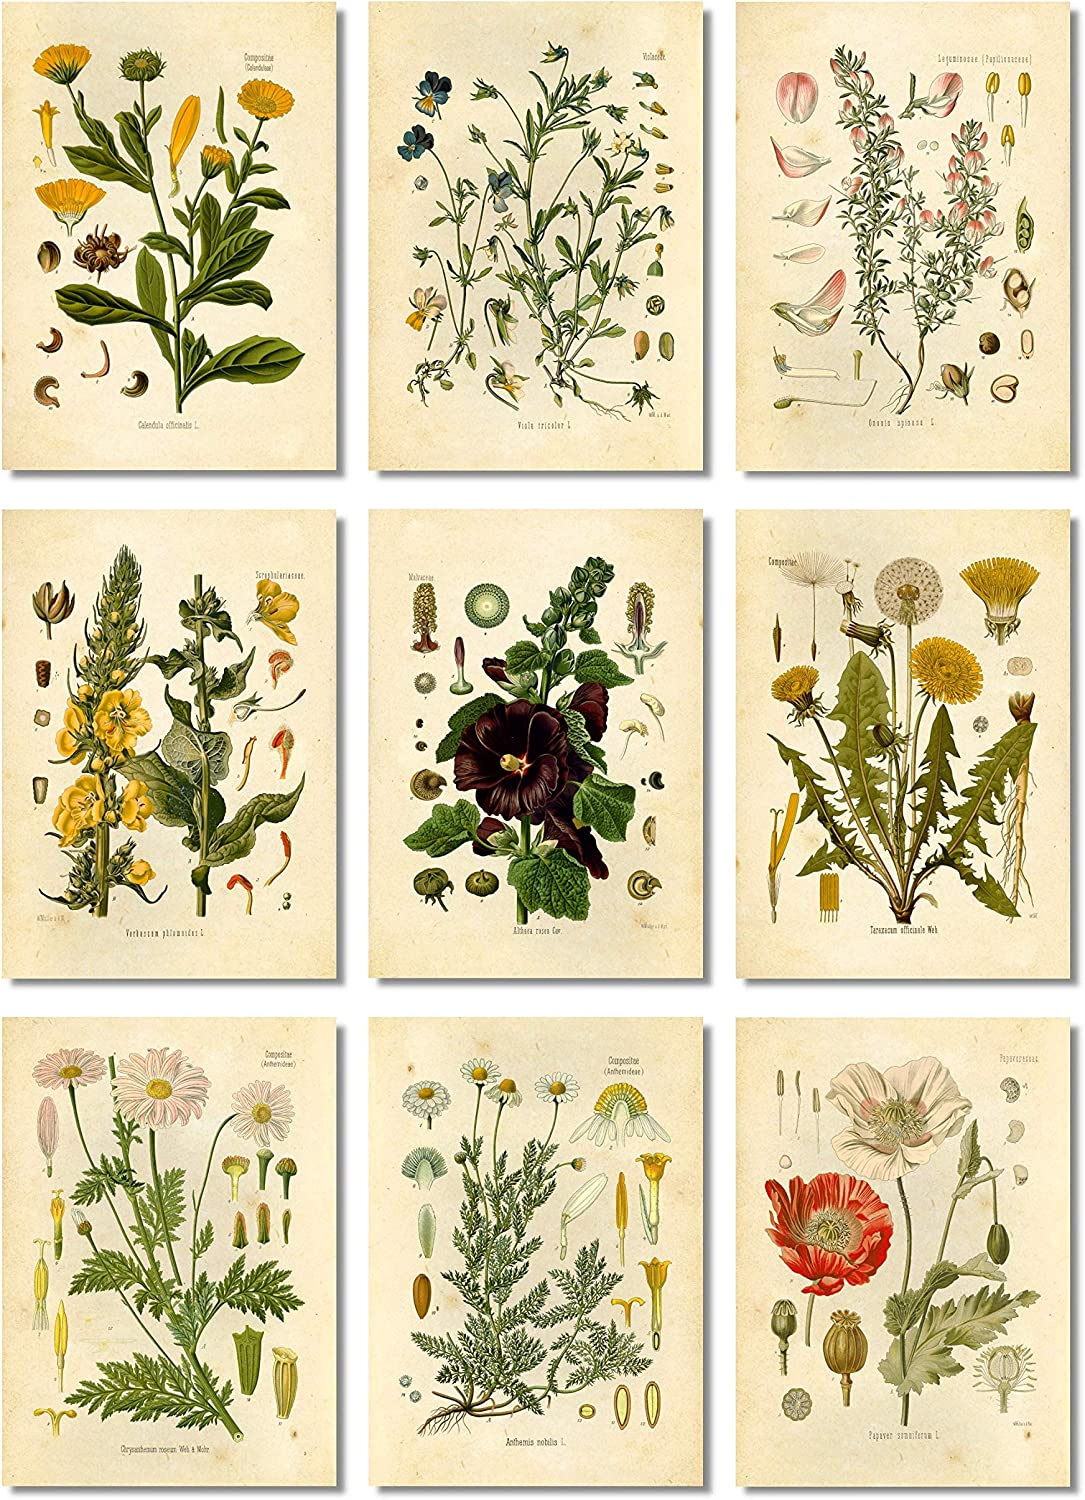 Ink Inc Botanical Prints Floral Wildflowers Wall Art Prints - Set of 9-5x7 - Matte - Unframed